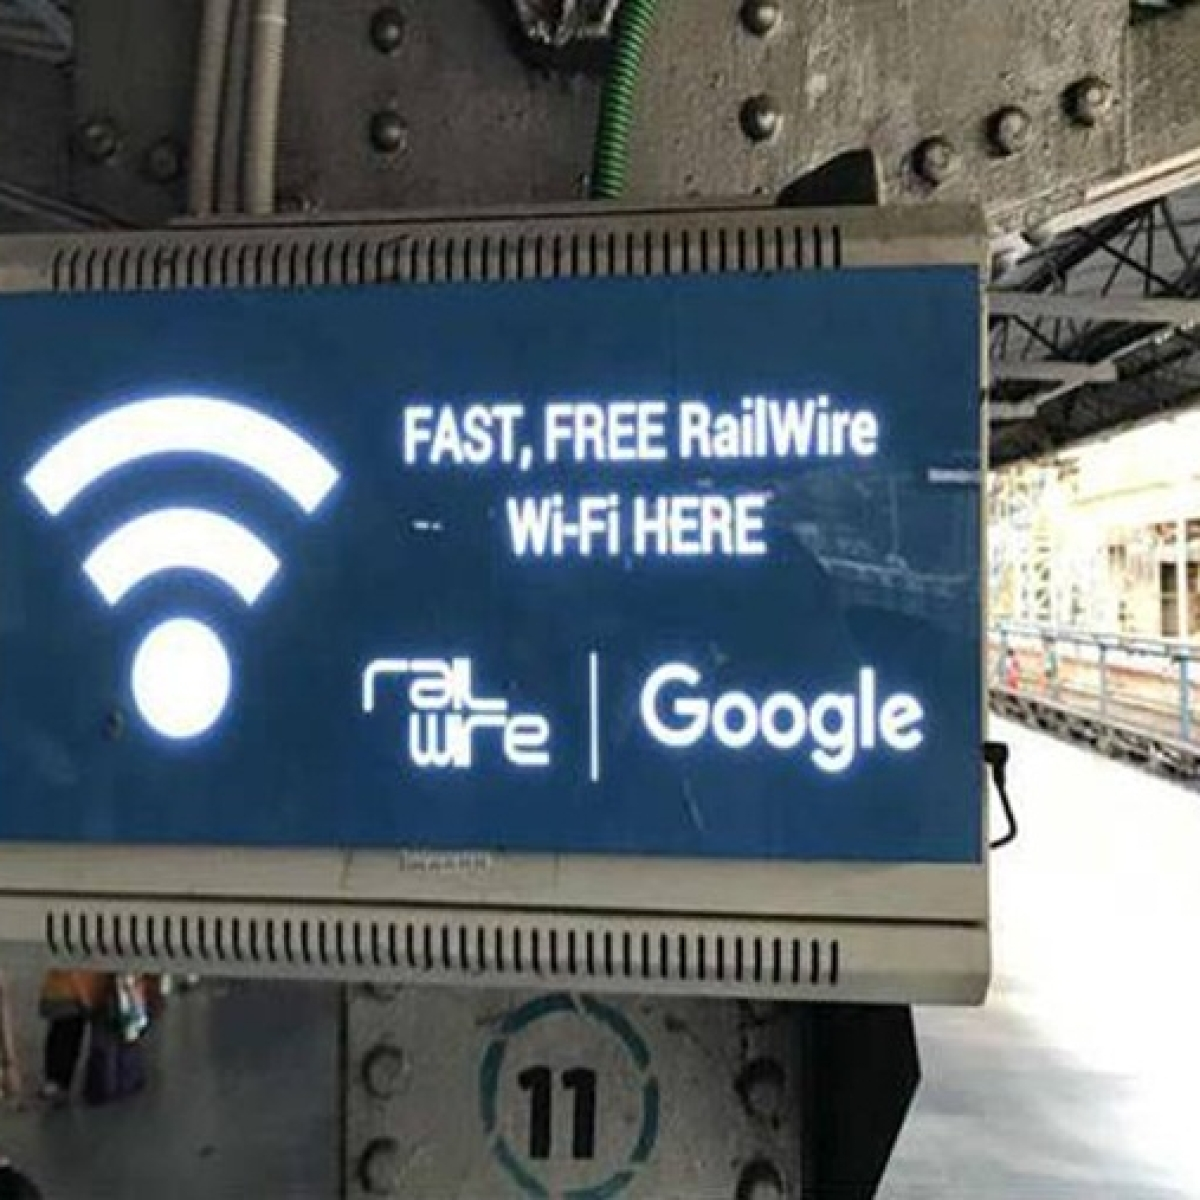 Free WiFi at 415 stations to continue even after contract with Google ends: RailTel